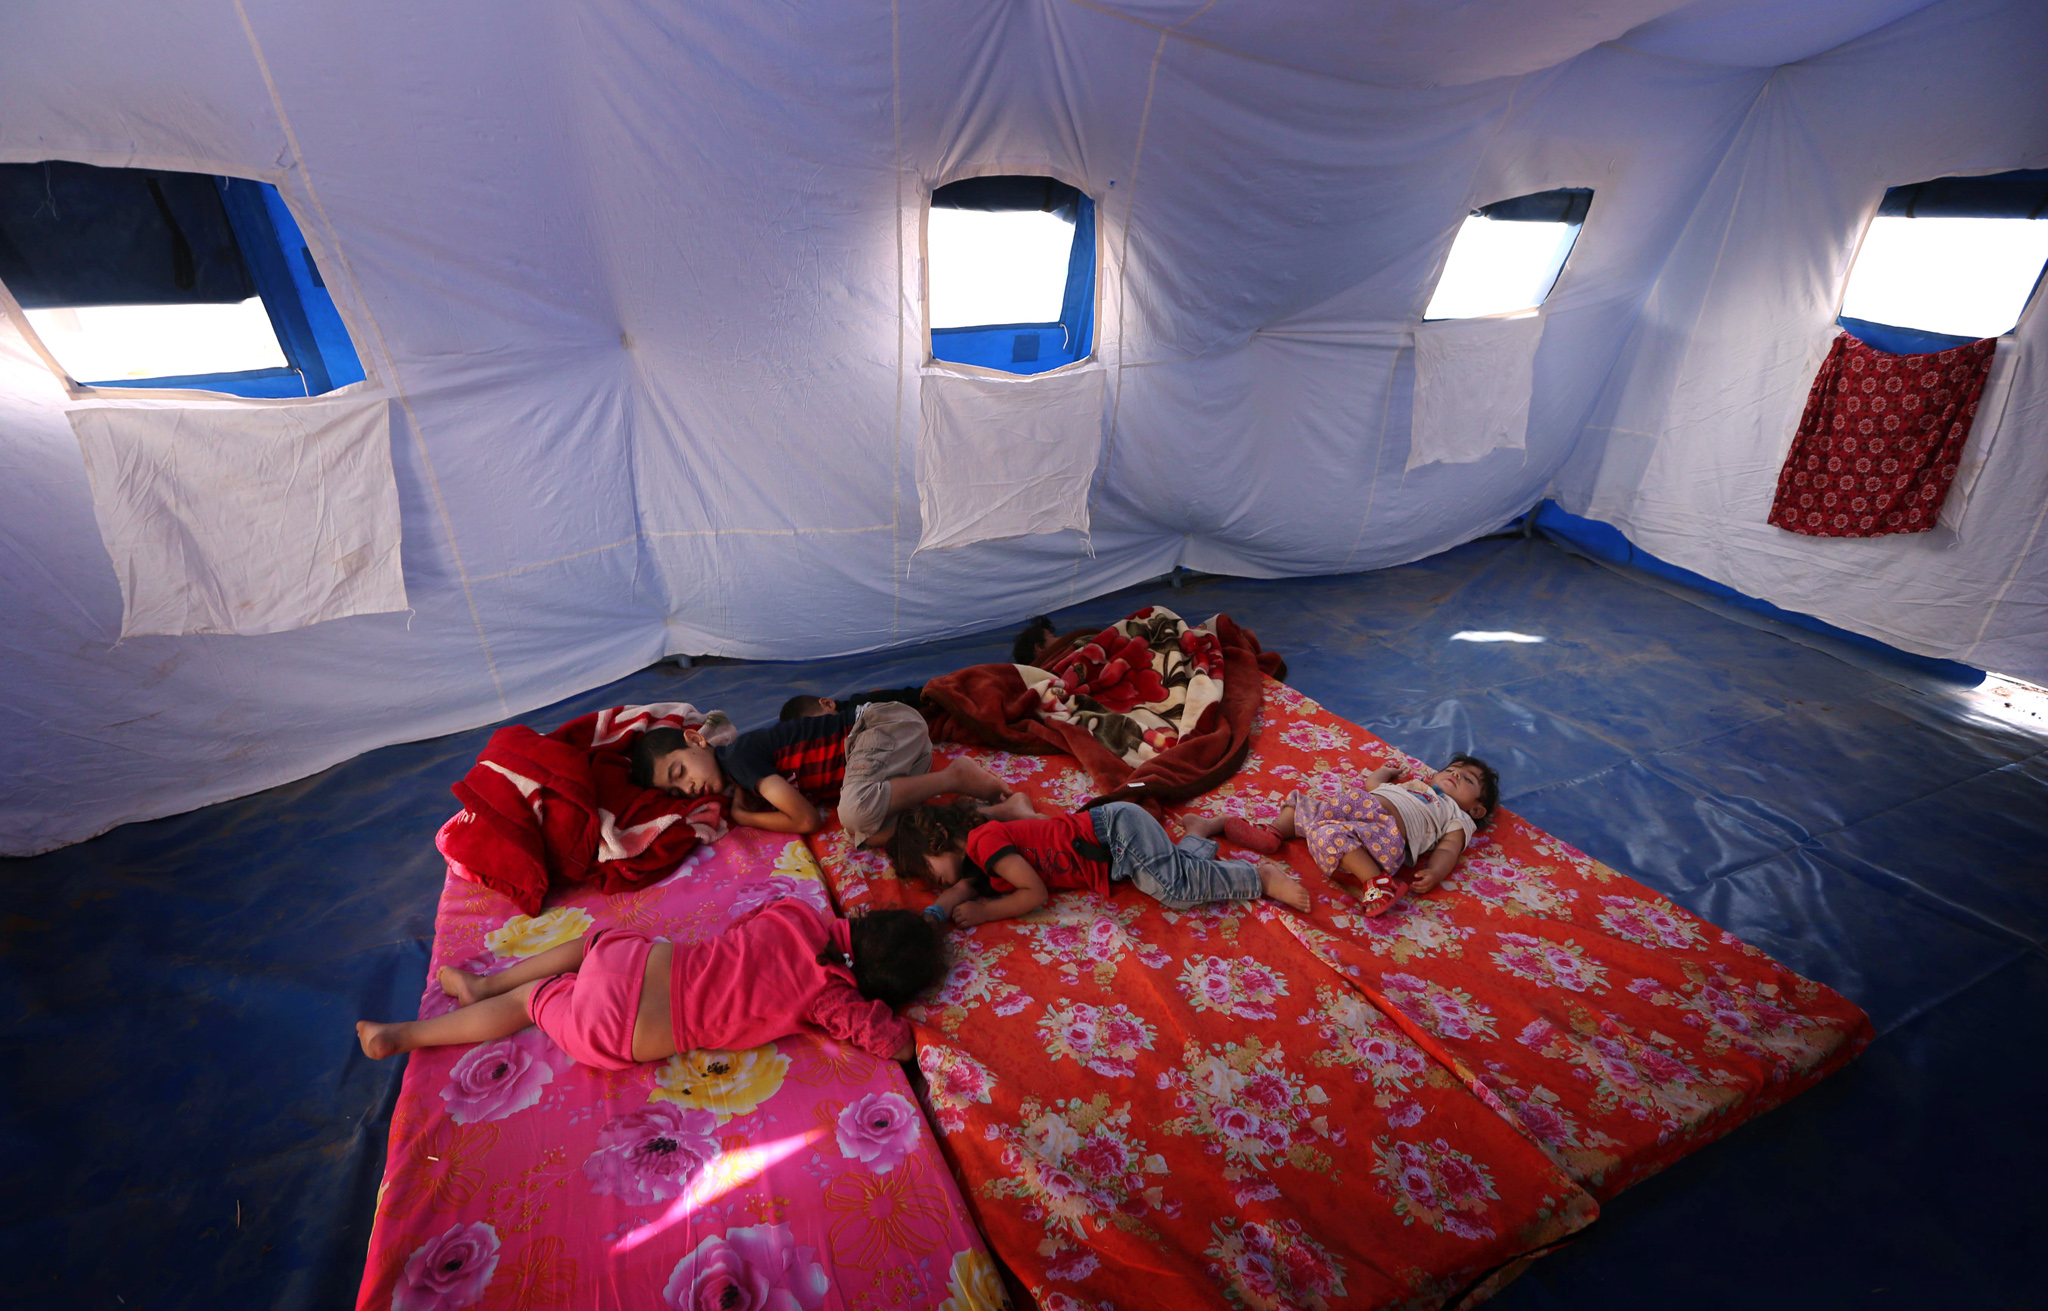 TOPSHOTS Iraqi children fleeing violence...TOPSHOTS Iraqi children fleeing violence in the northern Nineveh province sleep in a tent at a temporary camp in Aski kalak, 40 kms West of Arbil, in the autonomous Kurdistan region, on June 12, 2014. Thousands of people who fled Iraq's second city of Mosul after it was overrun by jihadists wait in the blistering heat, hoping to enter the safety of the nearby Kurdish region and furious at Baghdad's failure to help them.  many as half a million people are thought to have fled Mosul, which was captured by the Islamic State of Iraq and the Levant (ISIL) Tuesday after a spectacular assault that routed the army. AFP PHOTO/SAFIN HAMEDSAFIN HAMED/AFP/Getty Images